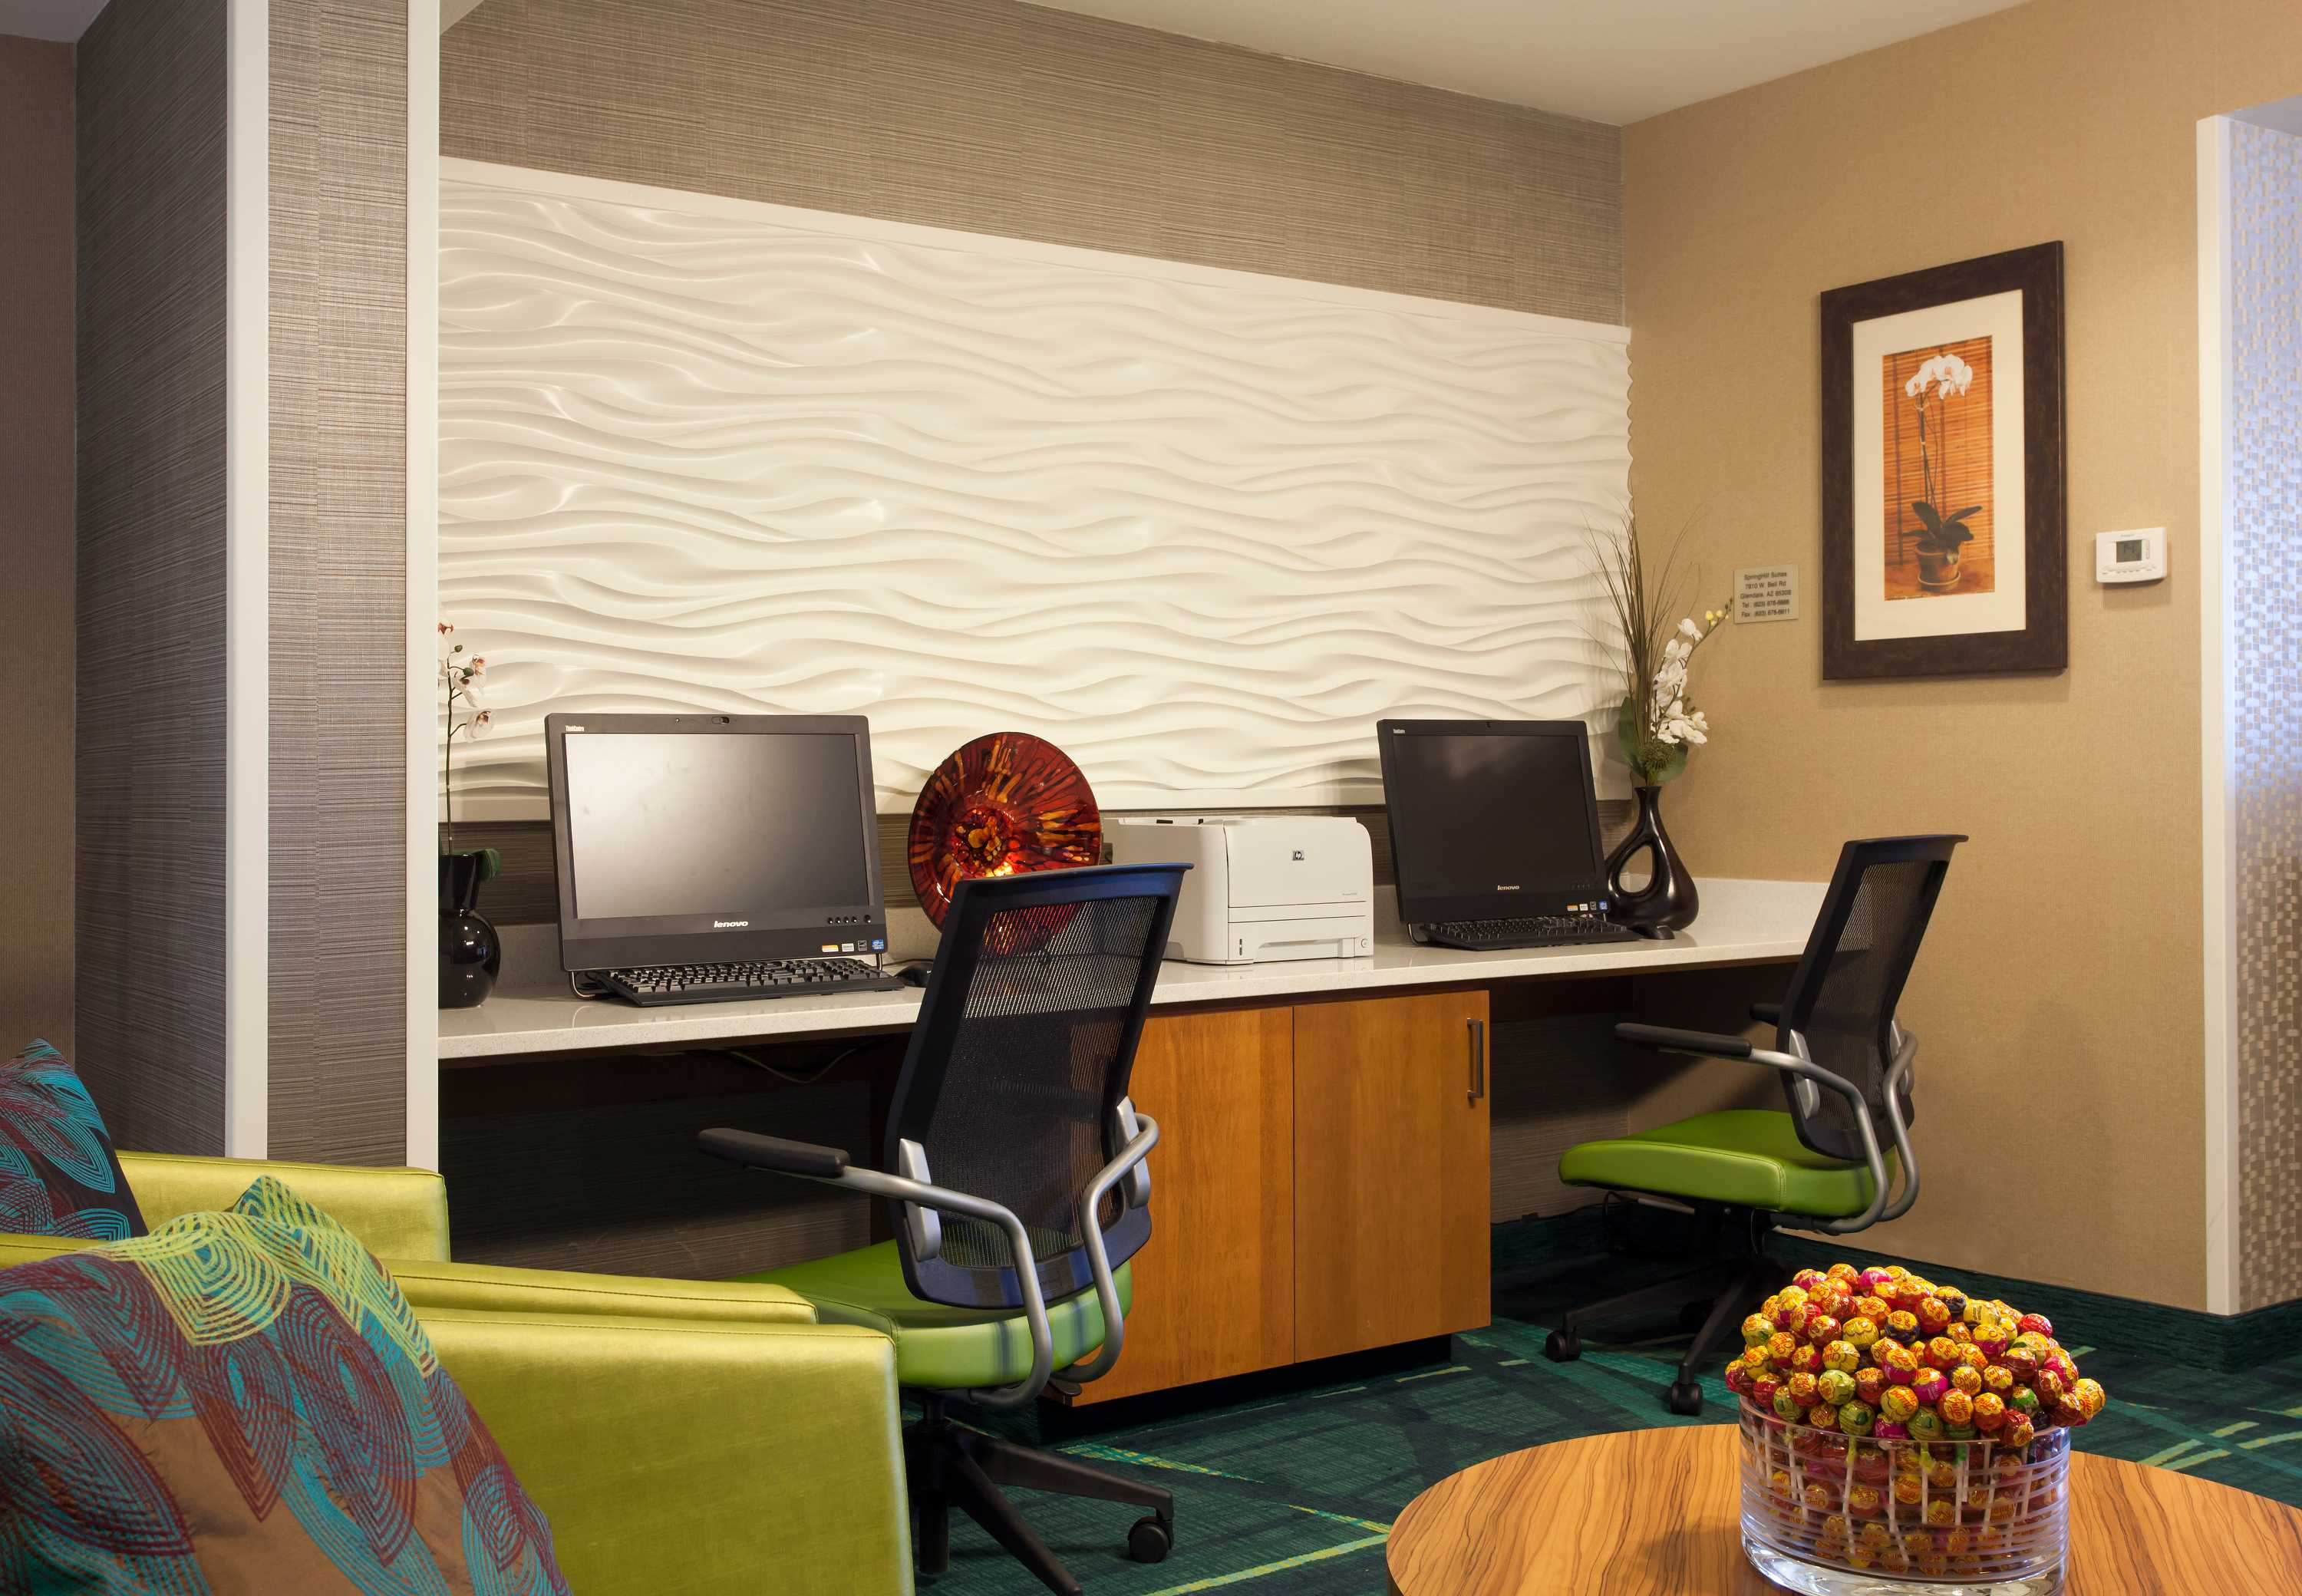 SpringHill Suites by Marriott Phoenix Glendale/Peoria image 13